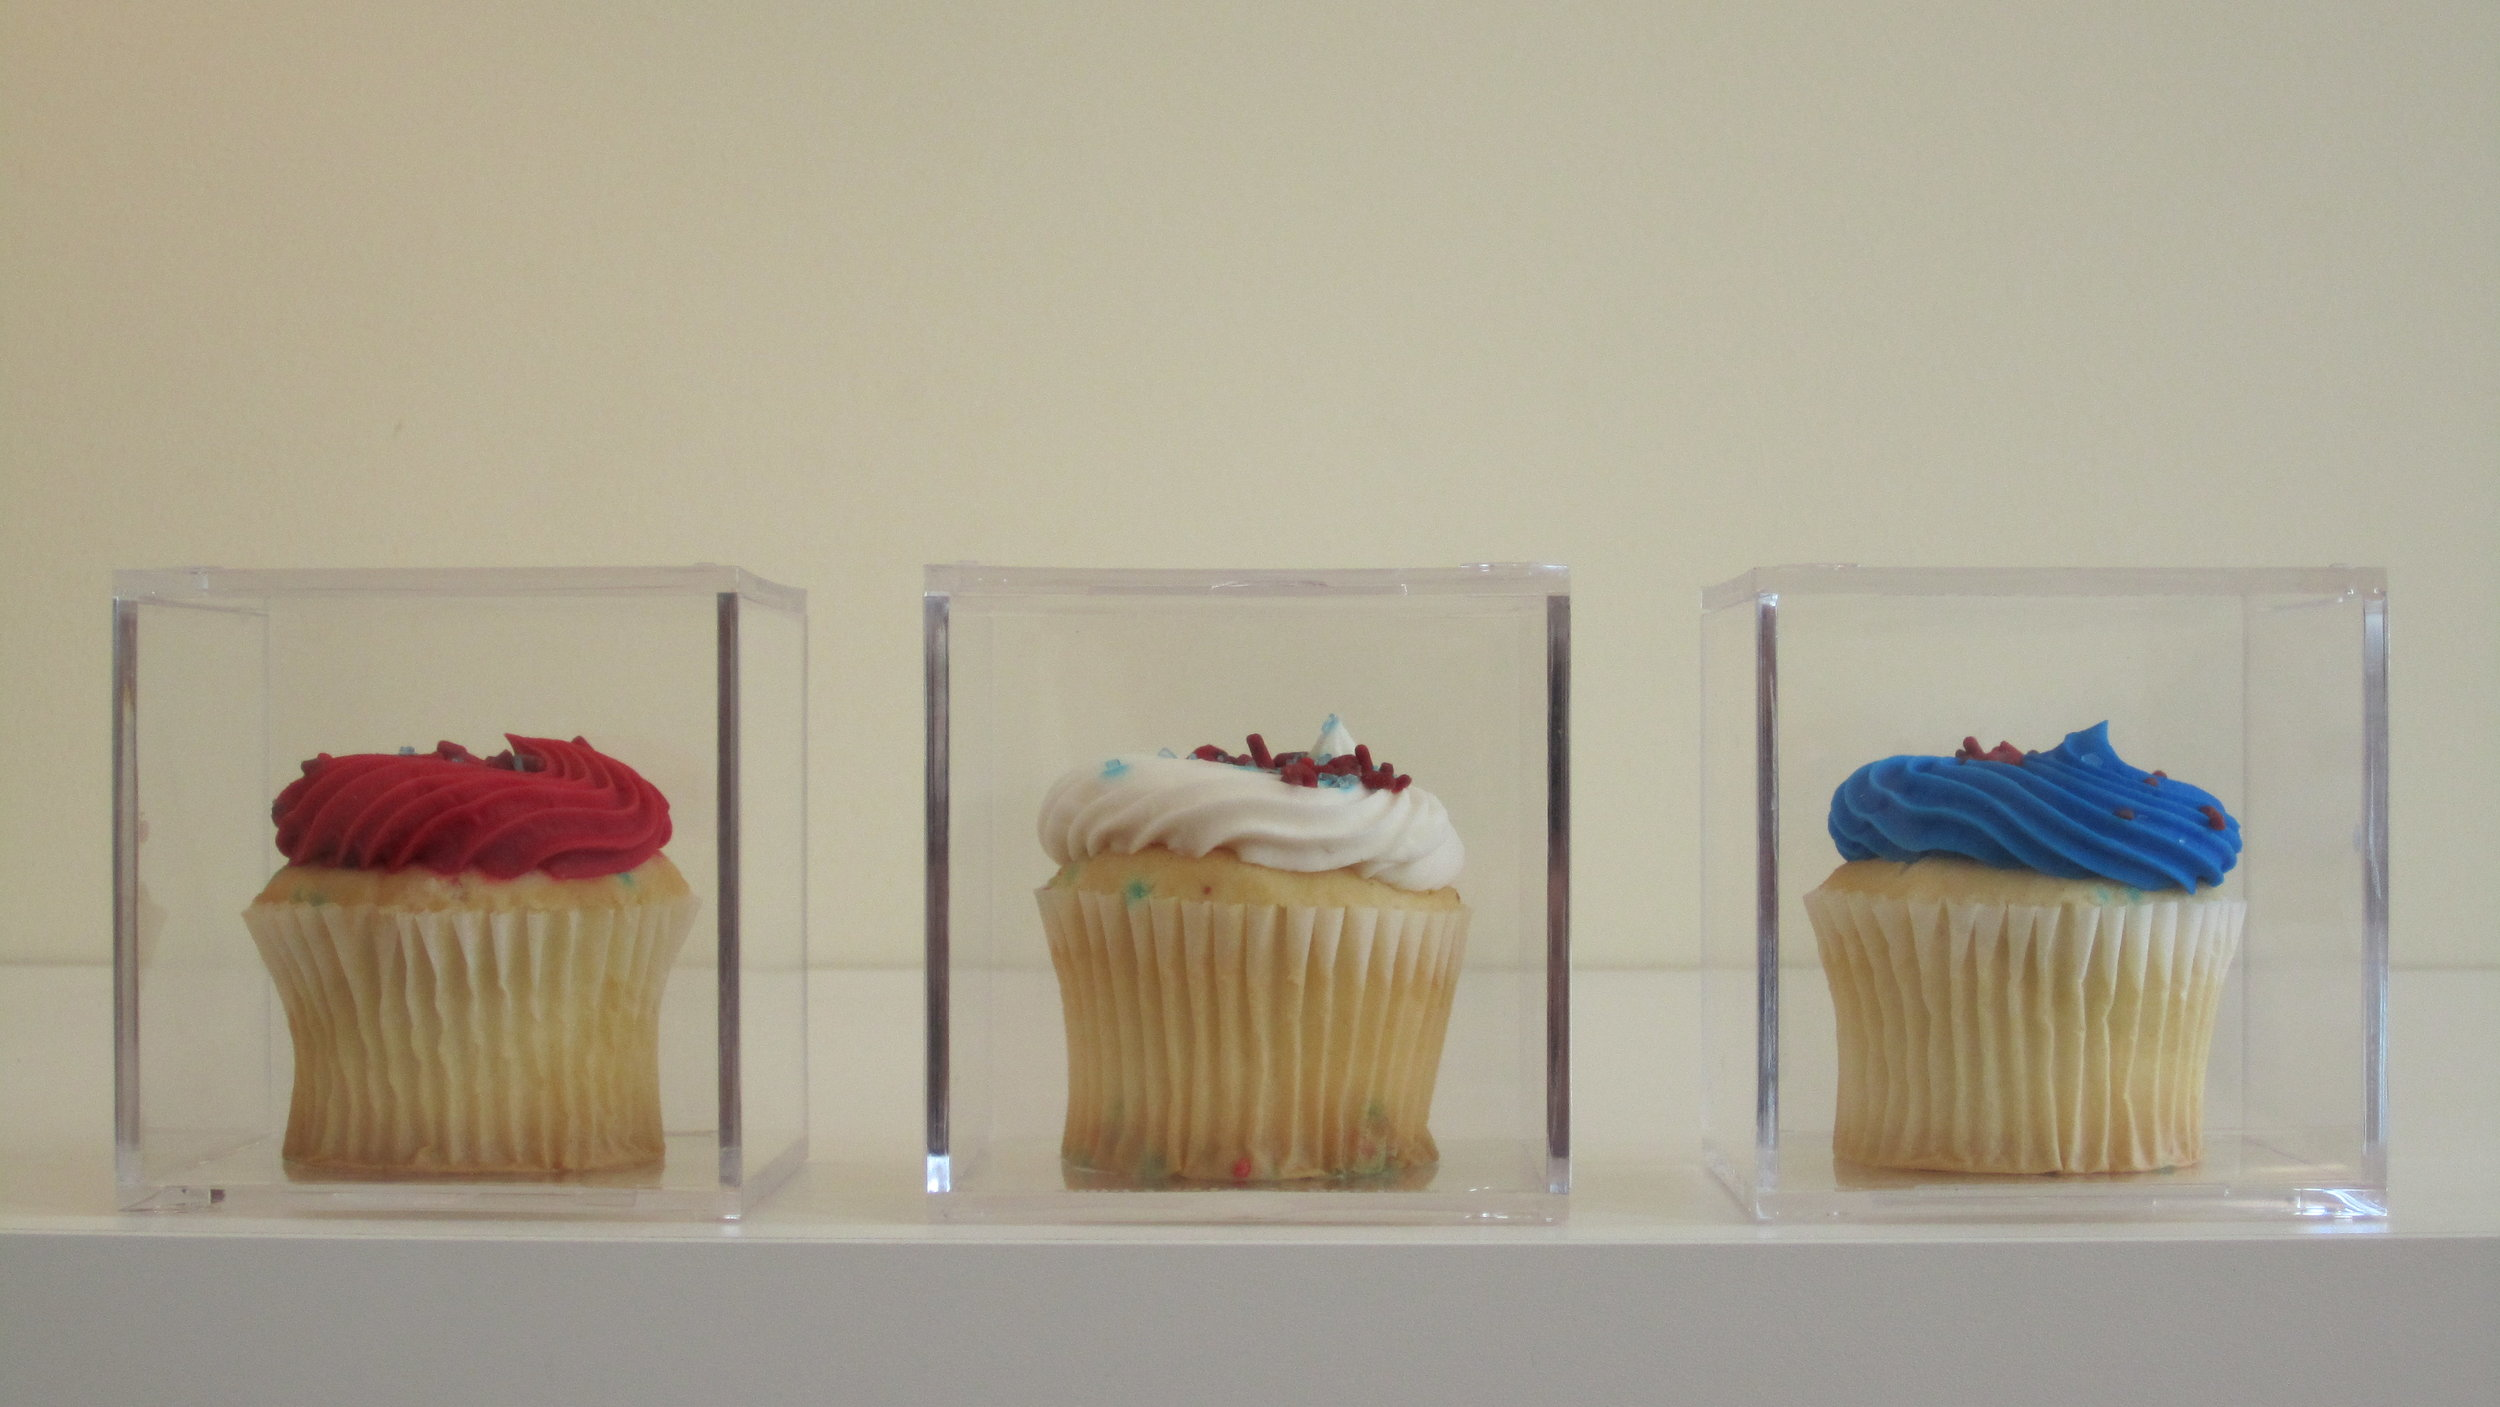 """2010. Store-bought cupcakes in acrylic display cases 3""""x3""""x3"""